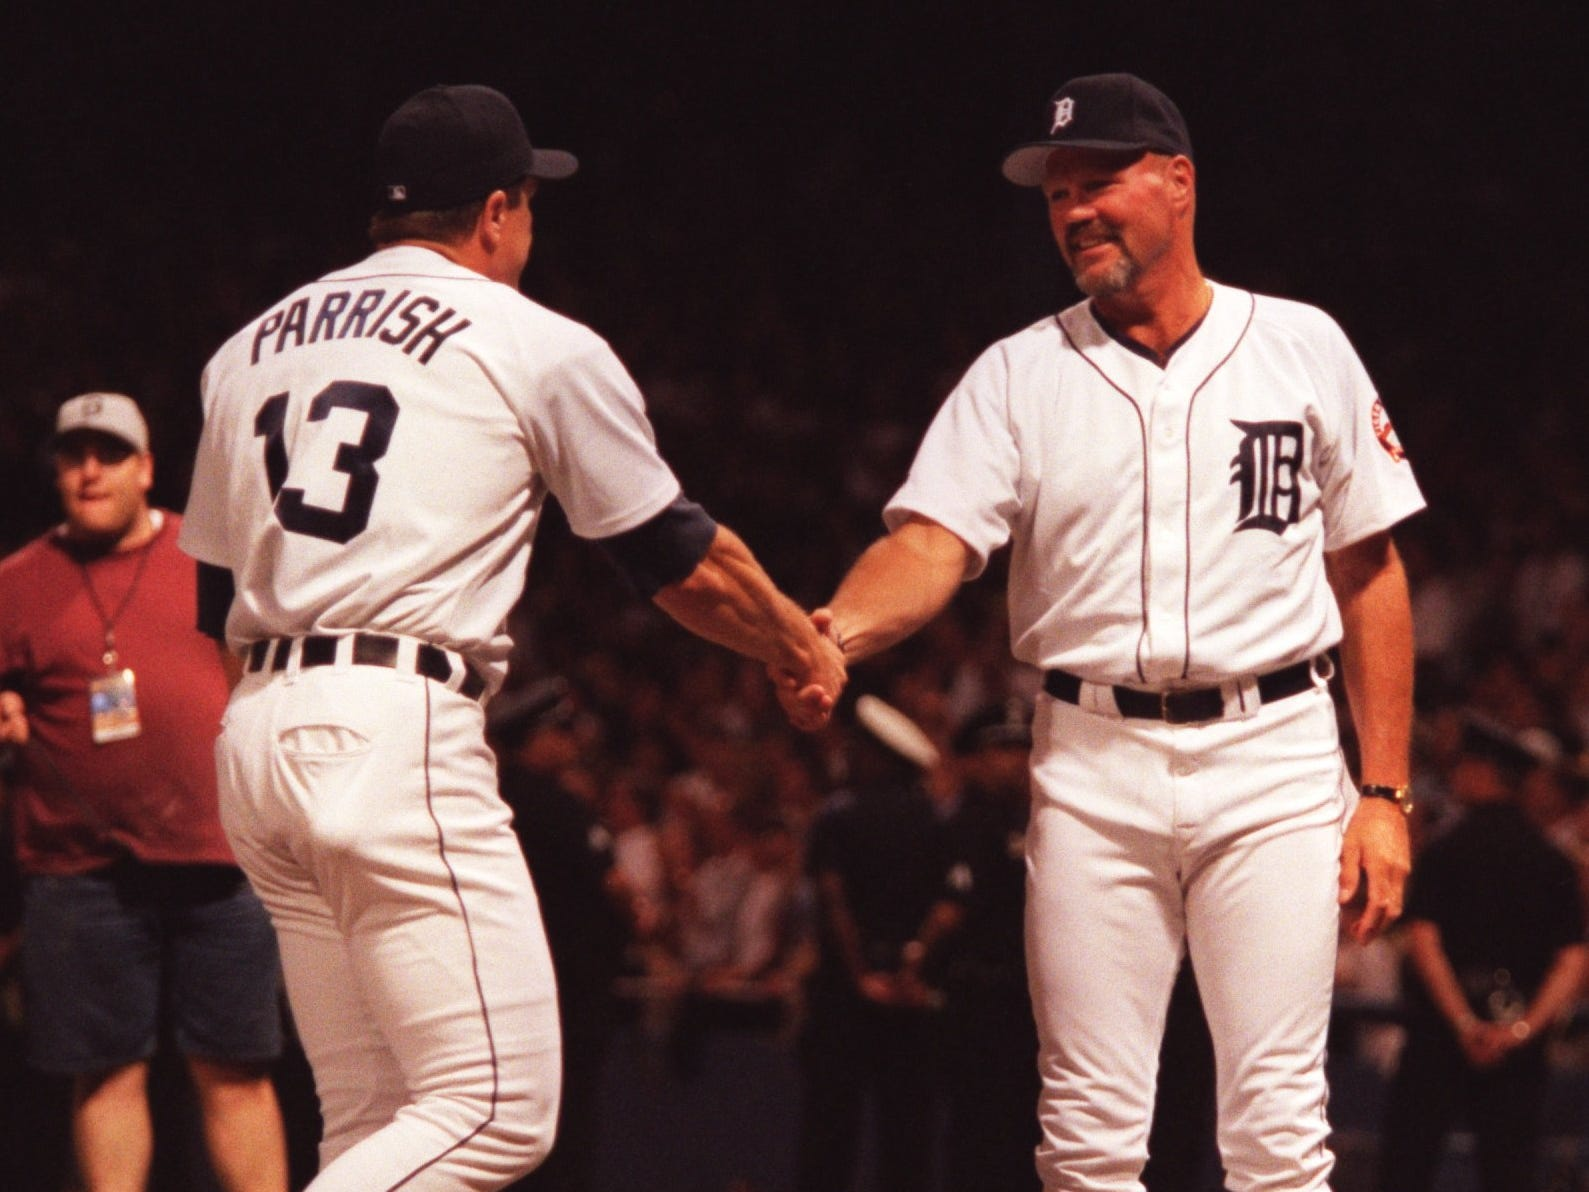 Former Detroit Tiger catchers Lance Parrish, left, and Bill Freehan shake hands during the closing ceremony after the final game at Tiger Stadium on Sept. 27, 1999.